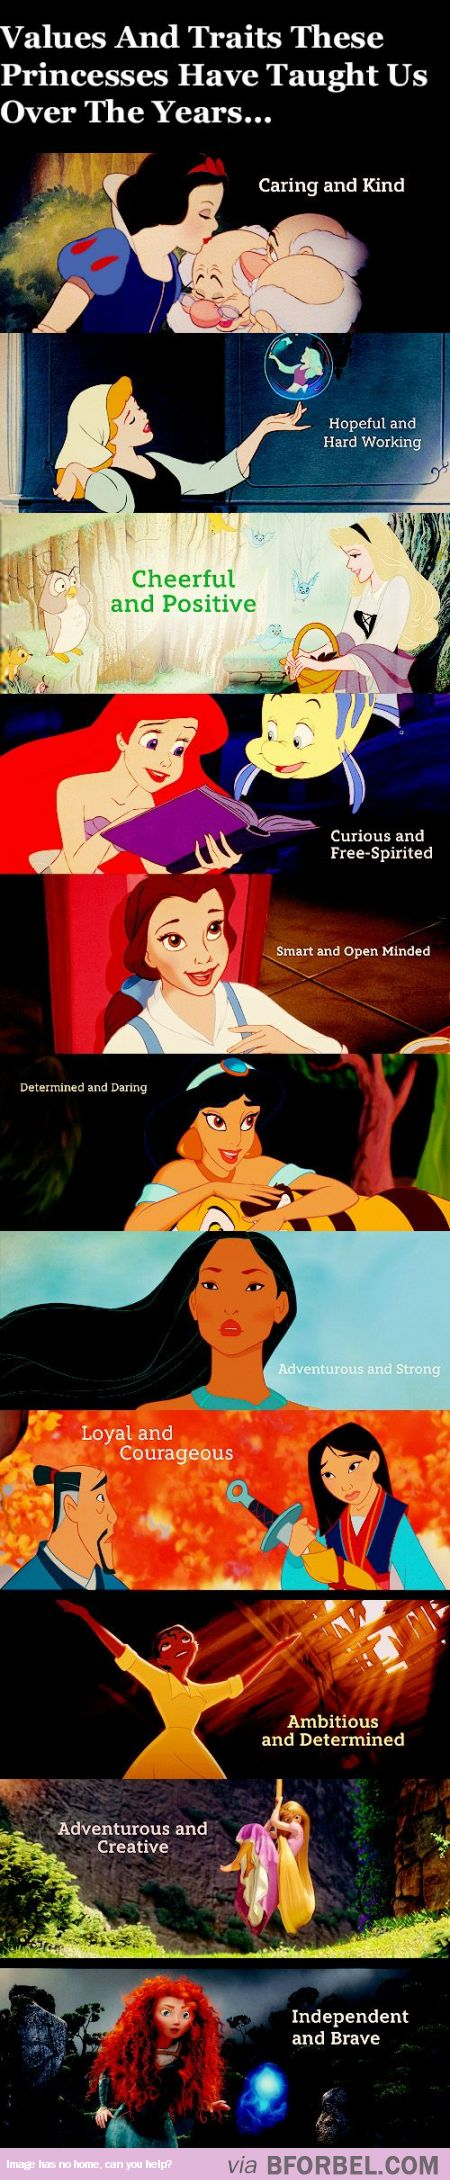 11 Values And Traits Disney Princesses Taught Us Over The Years…